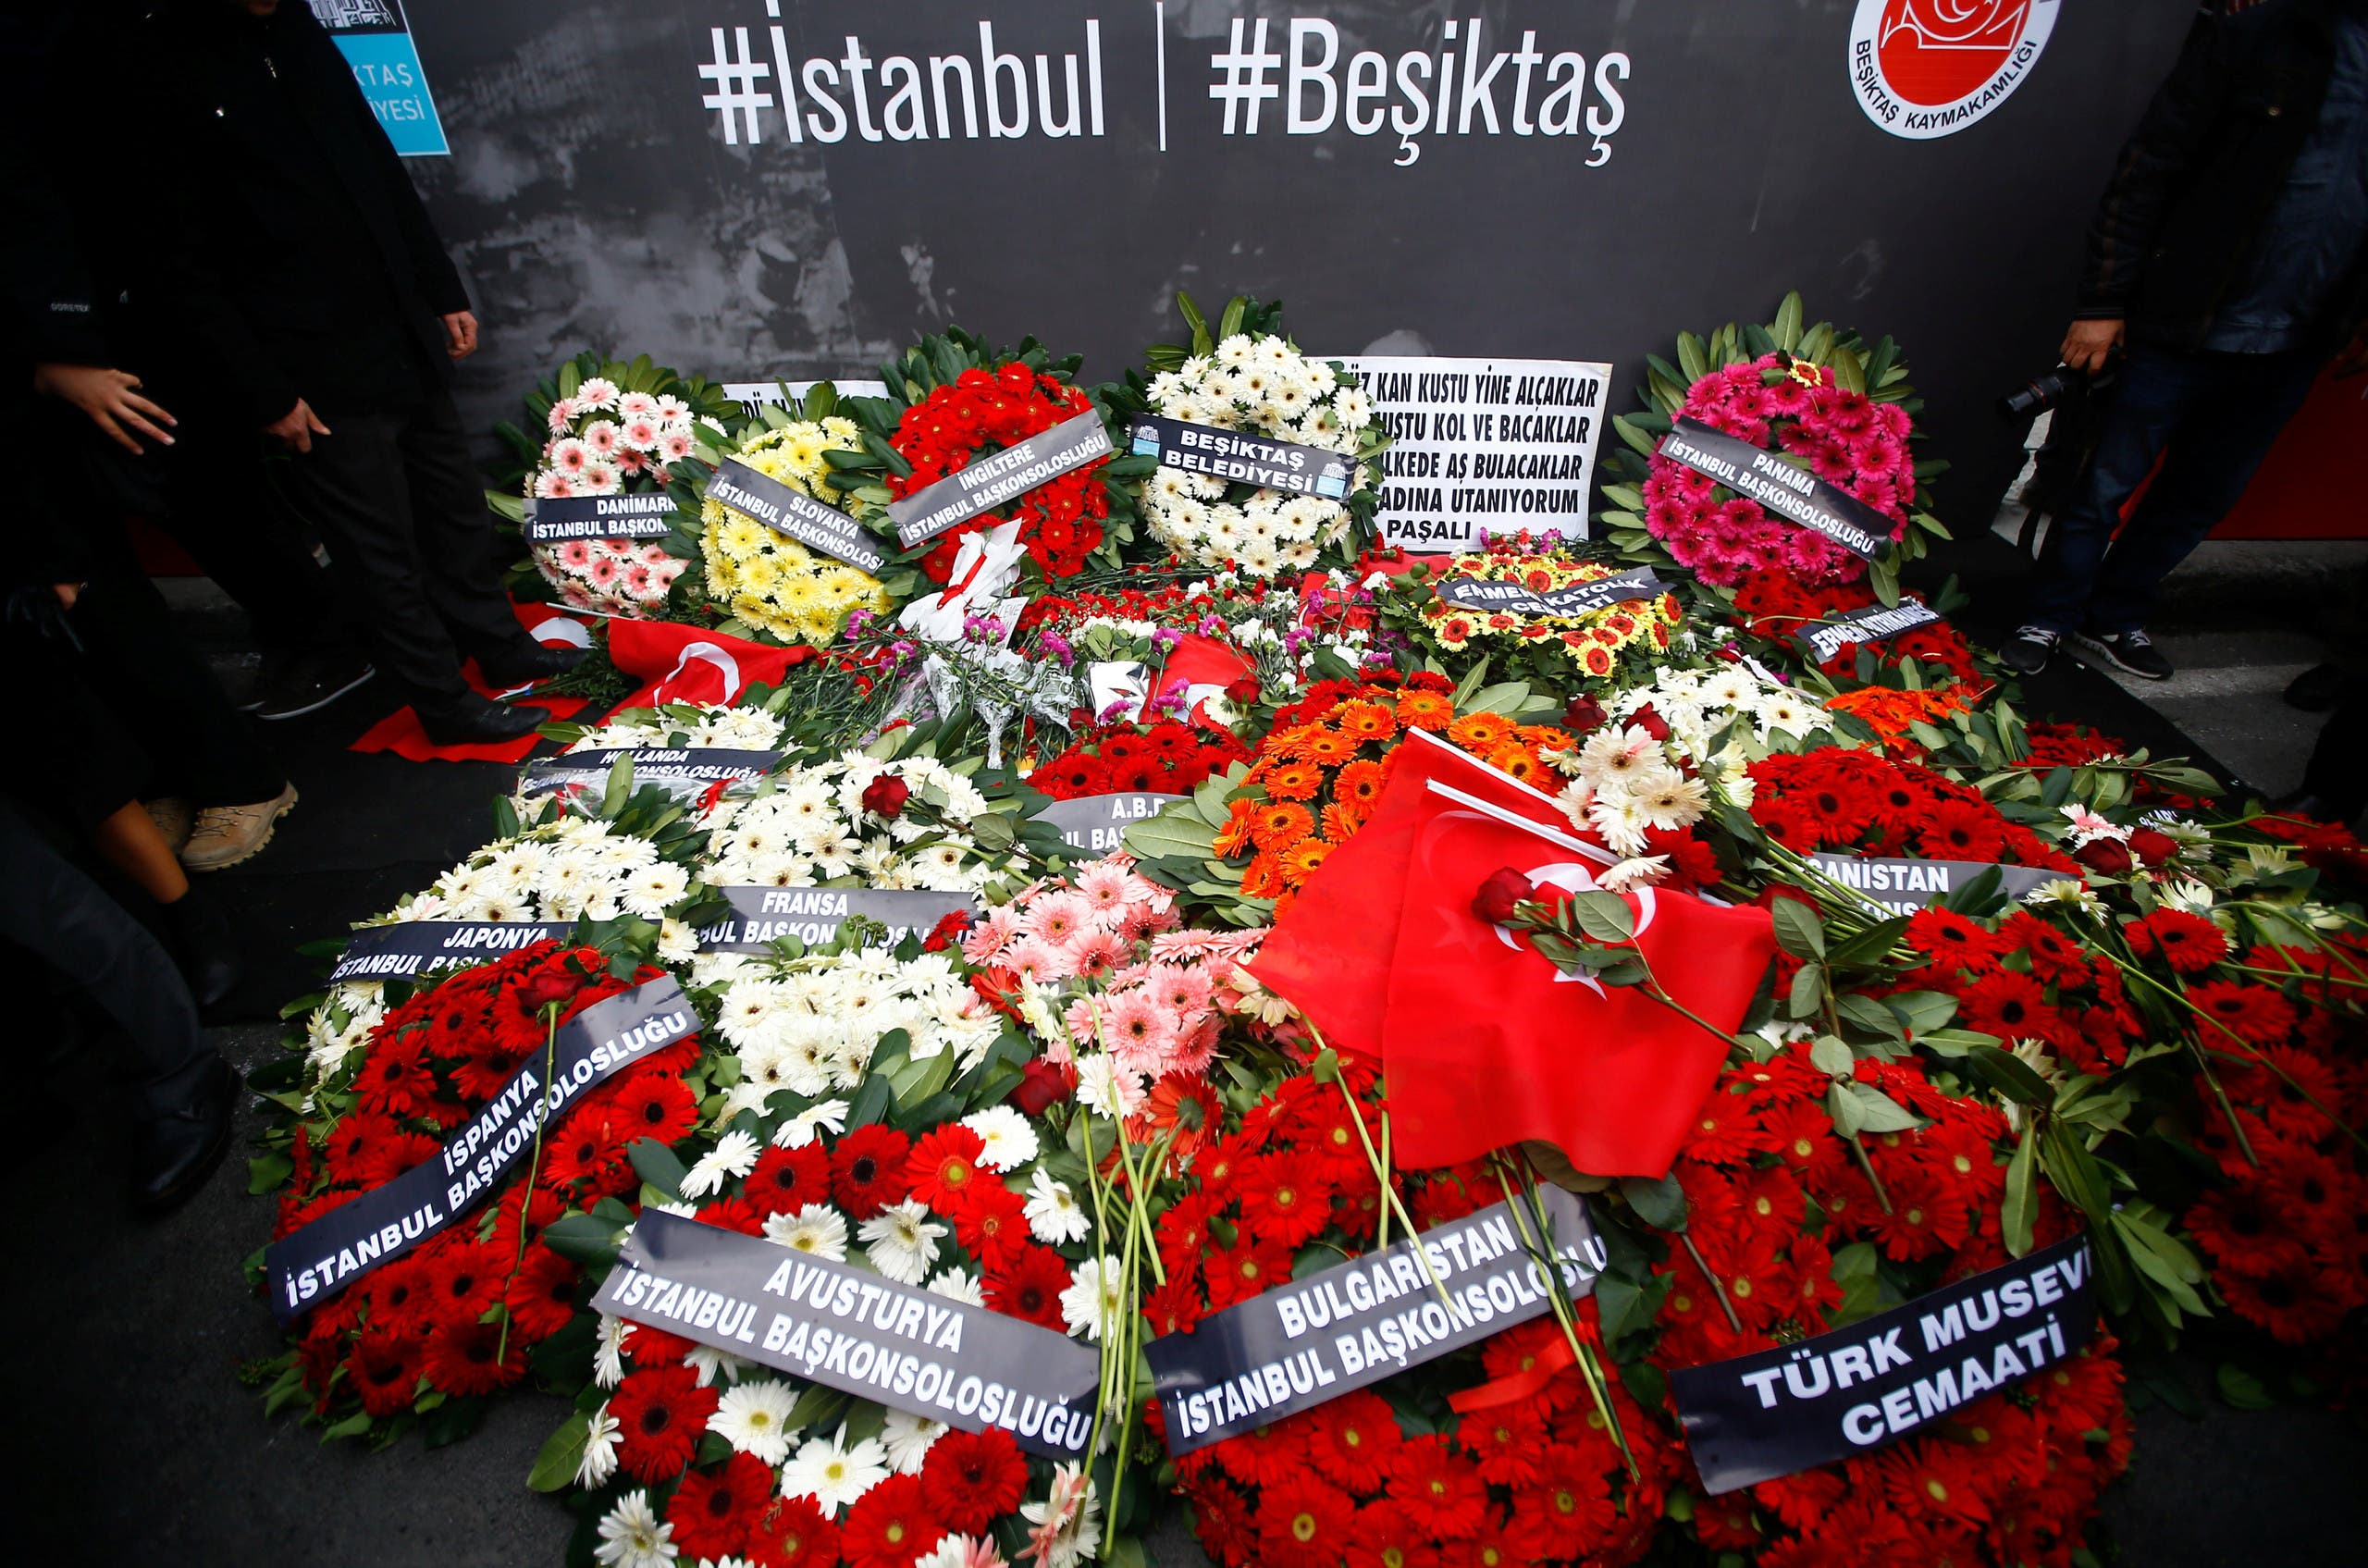 Wreaths, placed by representatives of foreign missions, are pictured at the scene of Saturday's blasts in Istanbul, Turkey, December 12, 2016. REUTERS/Osman Orsal